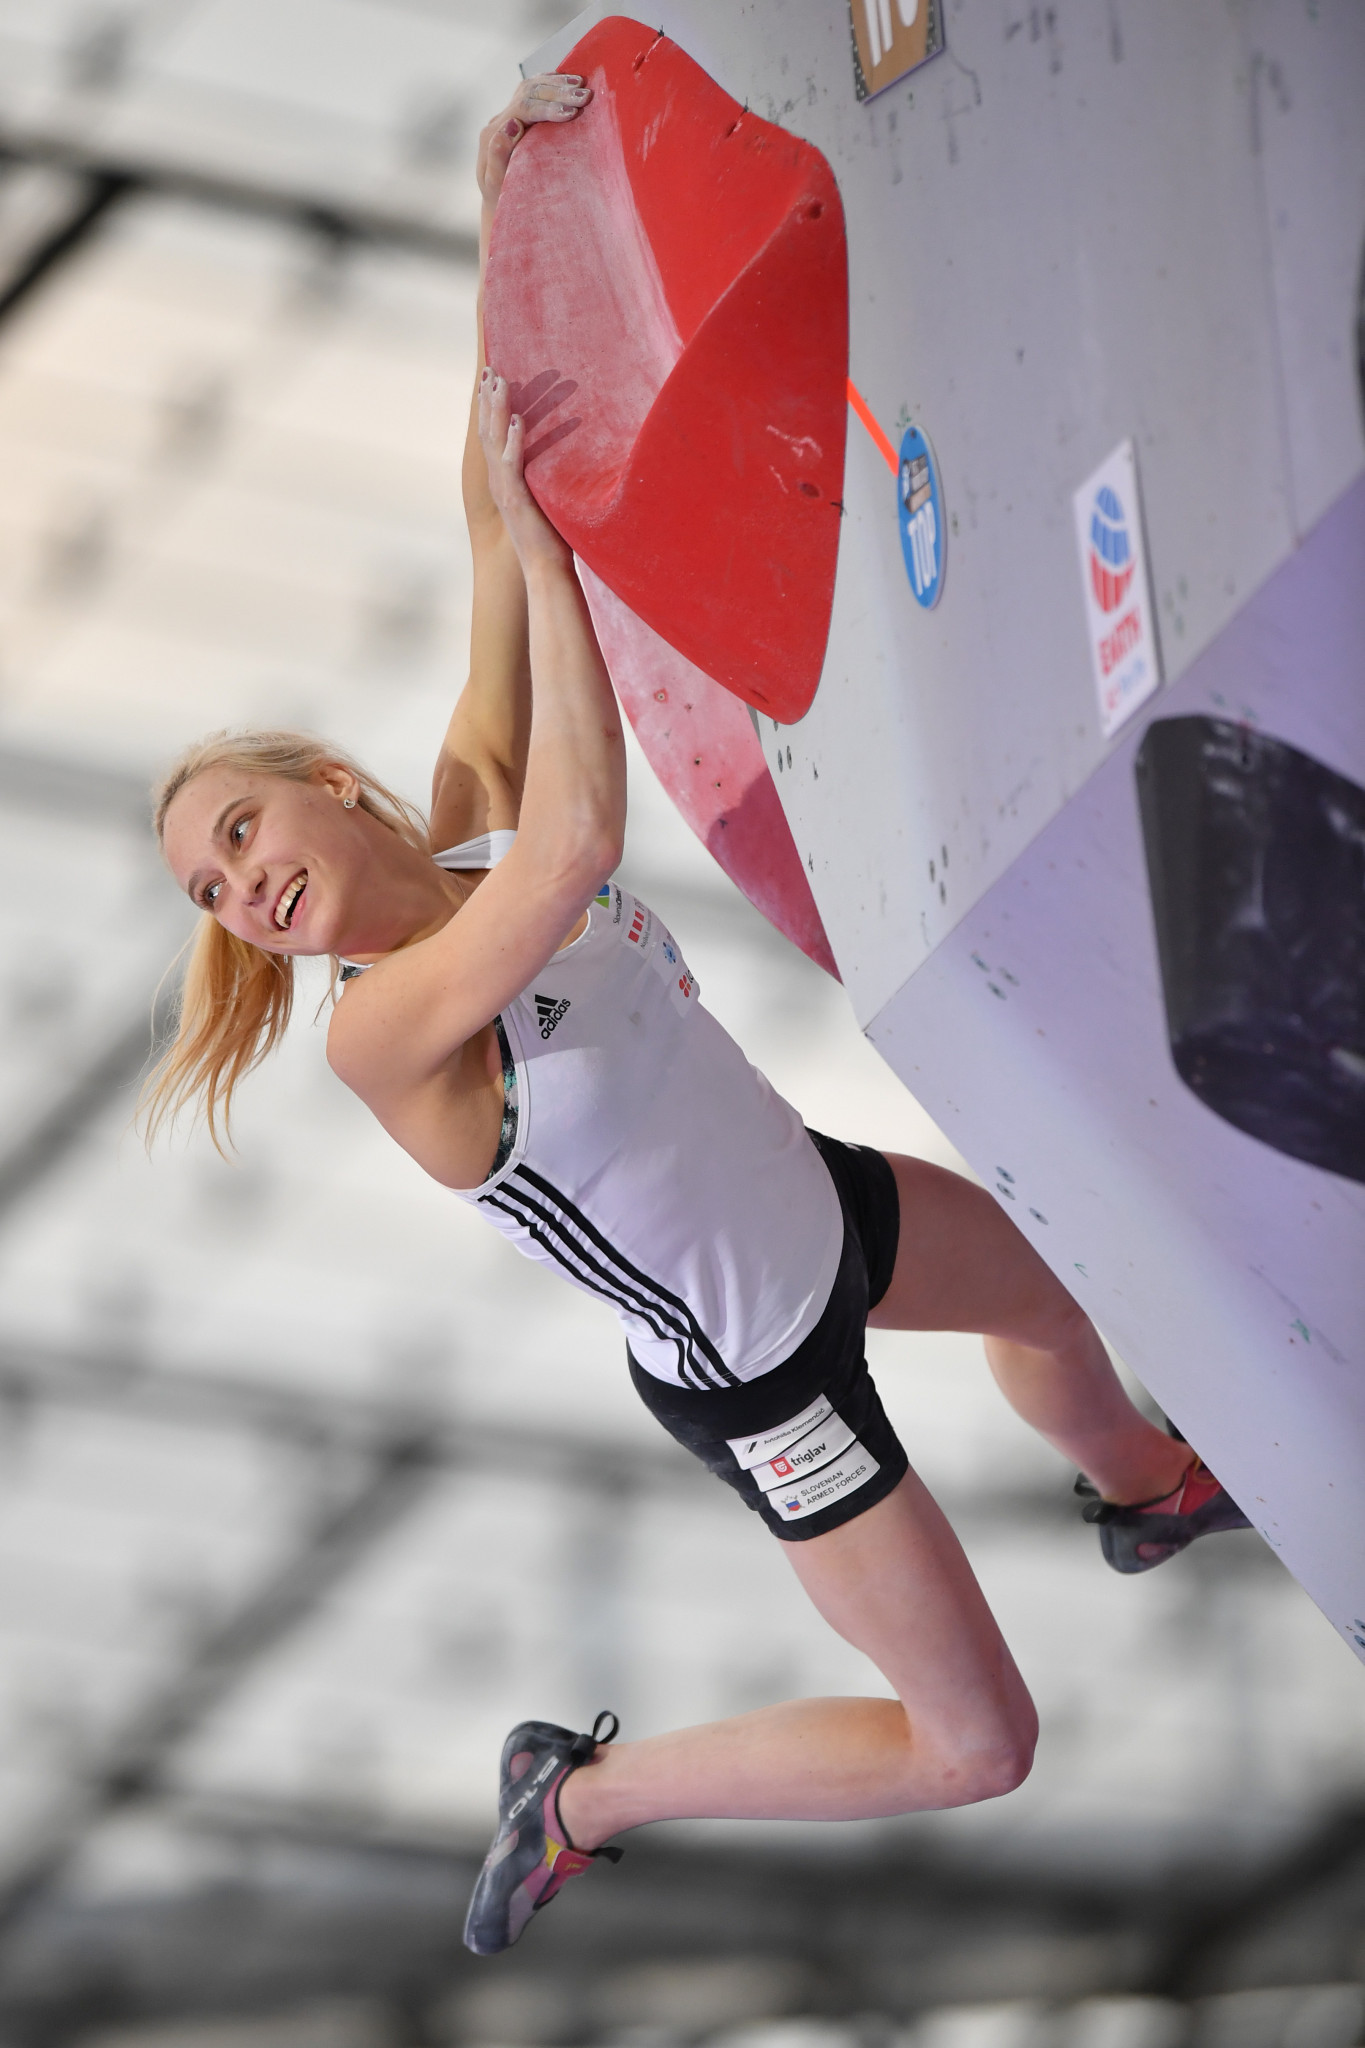 World champion Garnbret tops women's bouldering qualifying at IFSC Climbing World Championships